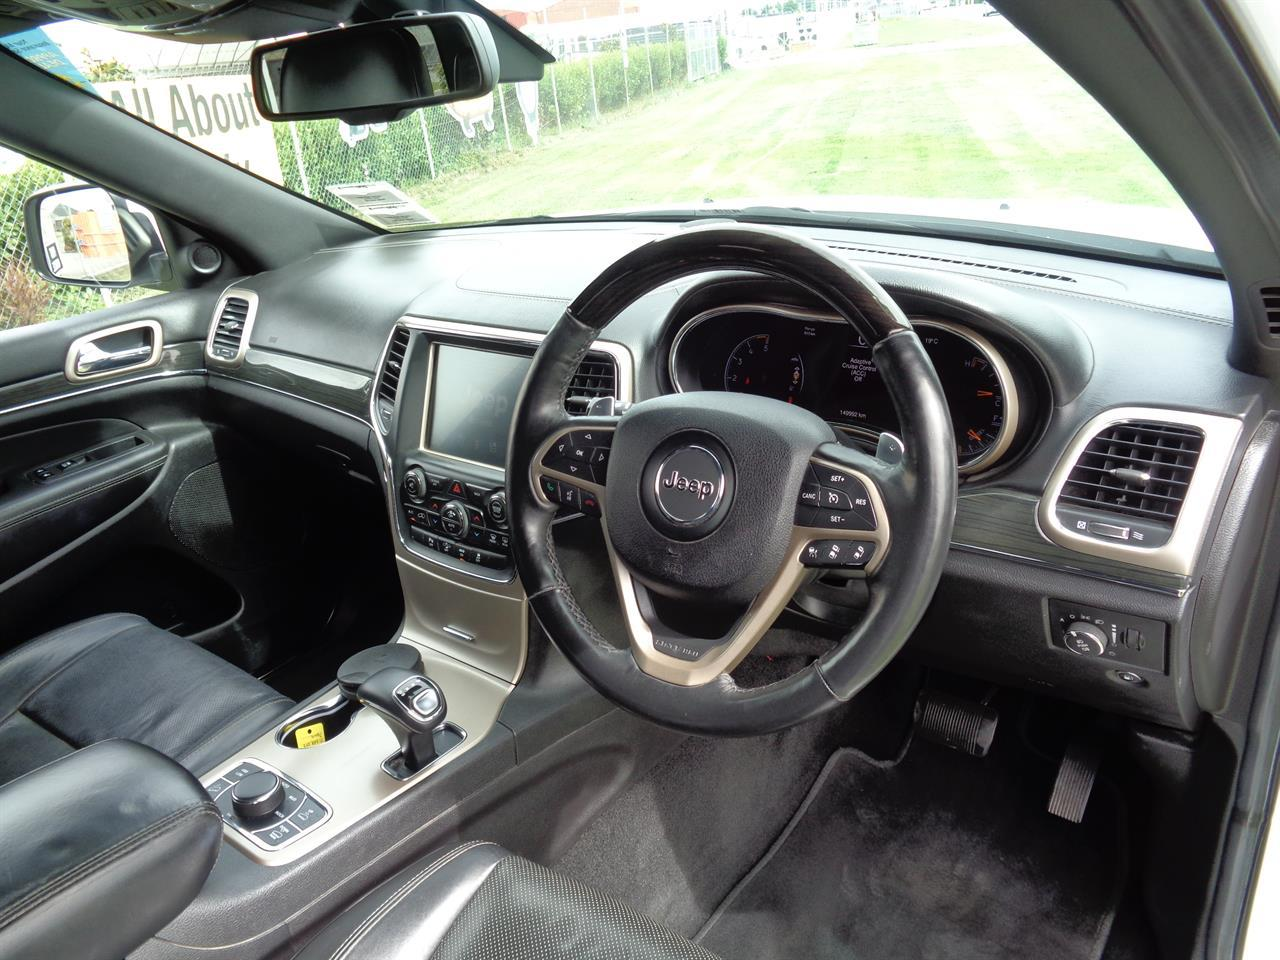 image-9, 2013 Jeep Grand Cherokee 3.0L V6 CRD OVERLAND at Christchurch